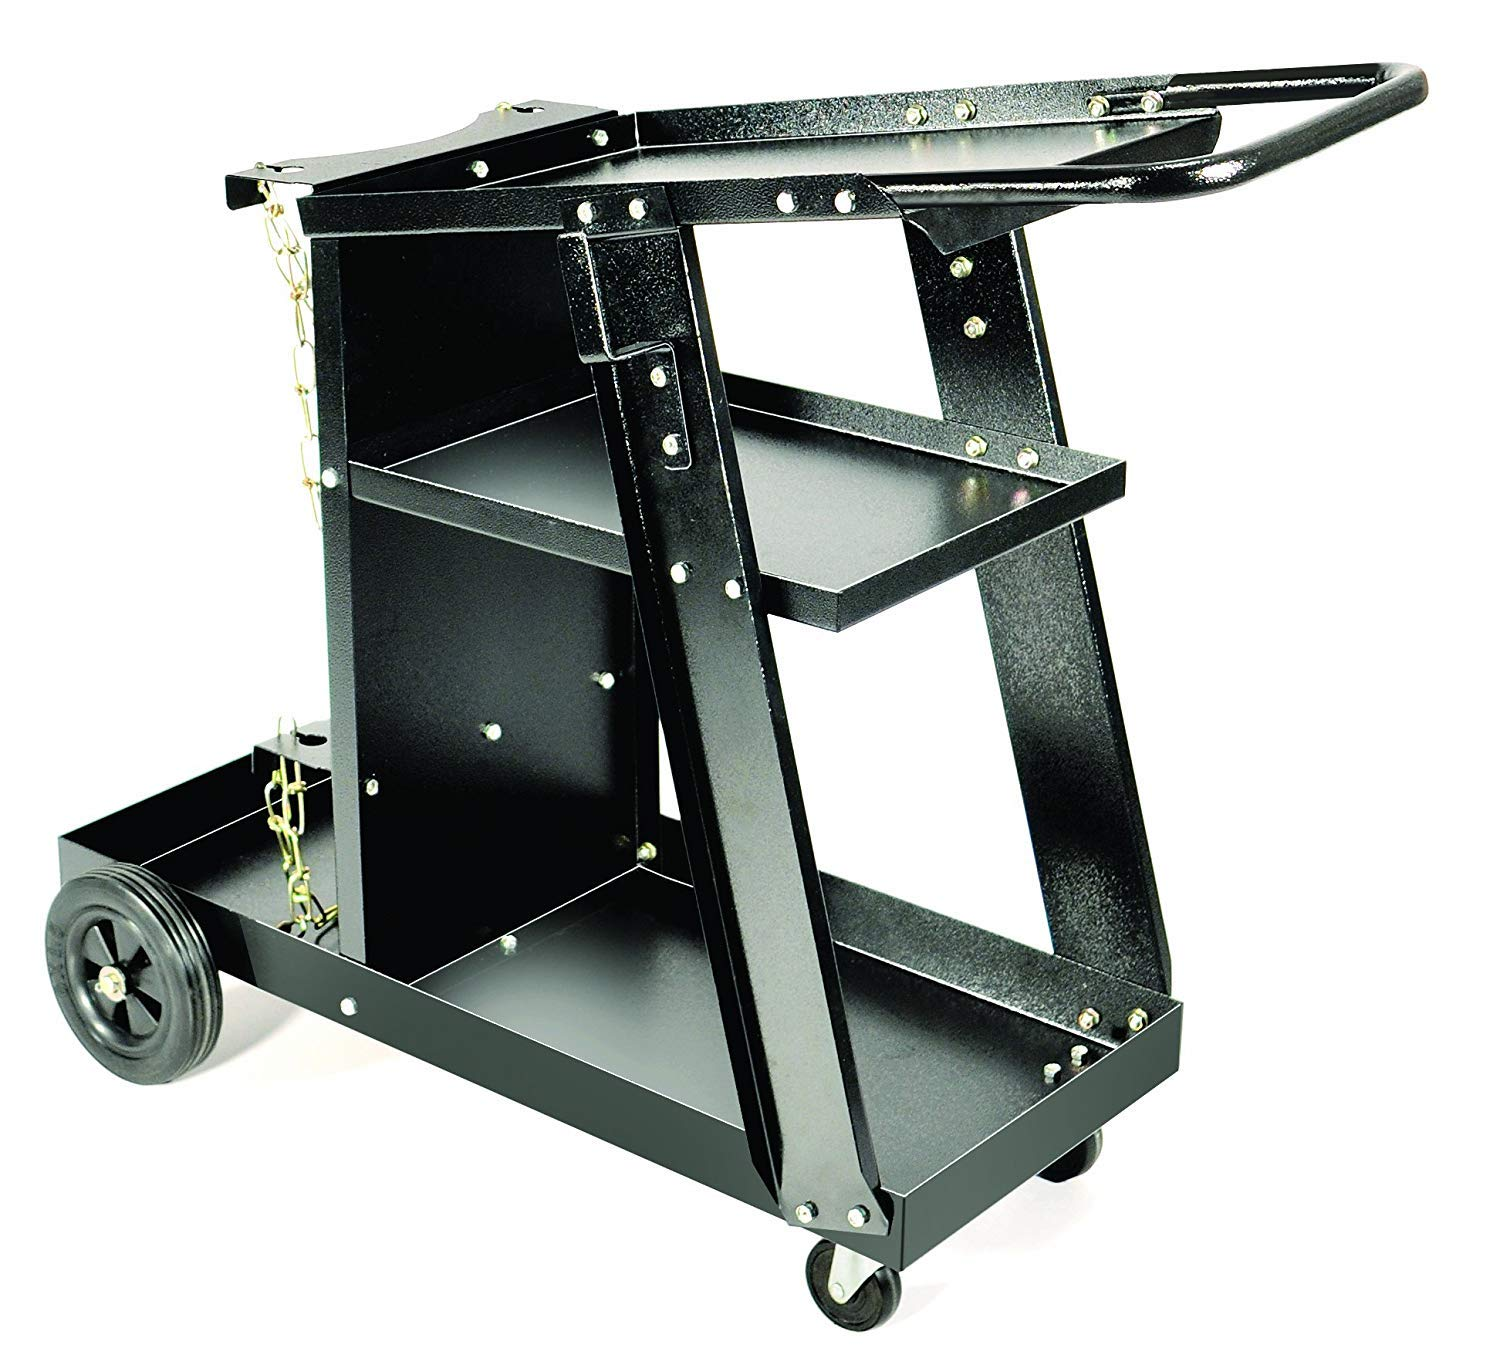 Hot Max WC100 Welding/Plasma Cutter Cart by Hot Max